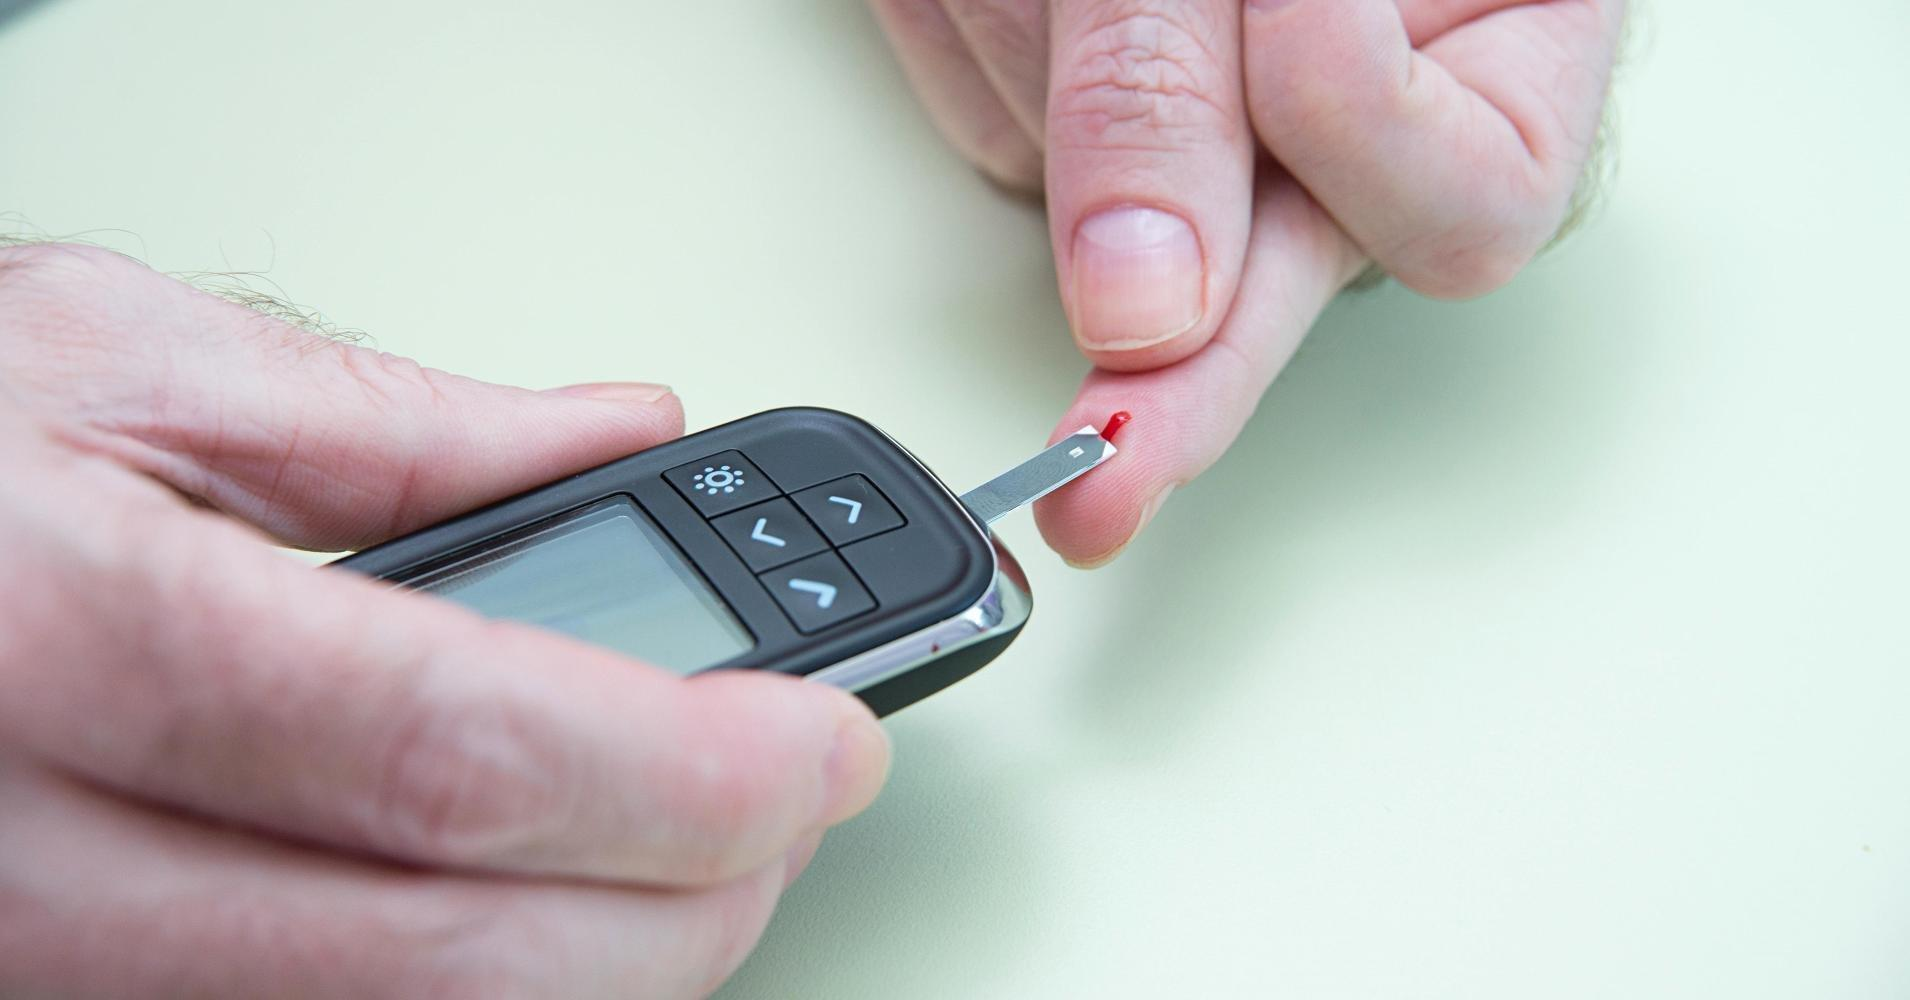 Medical Innovations For Type 1 Diabetes